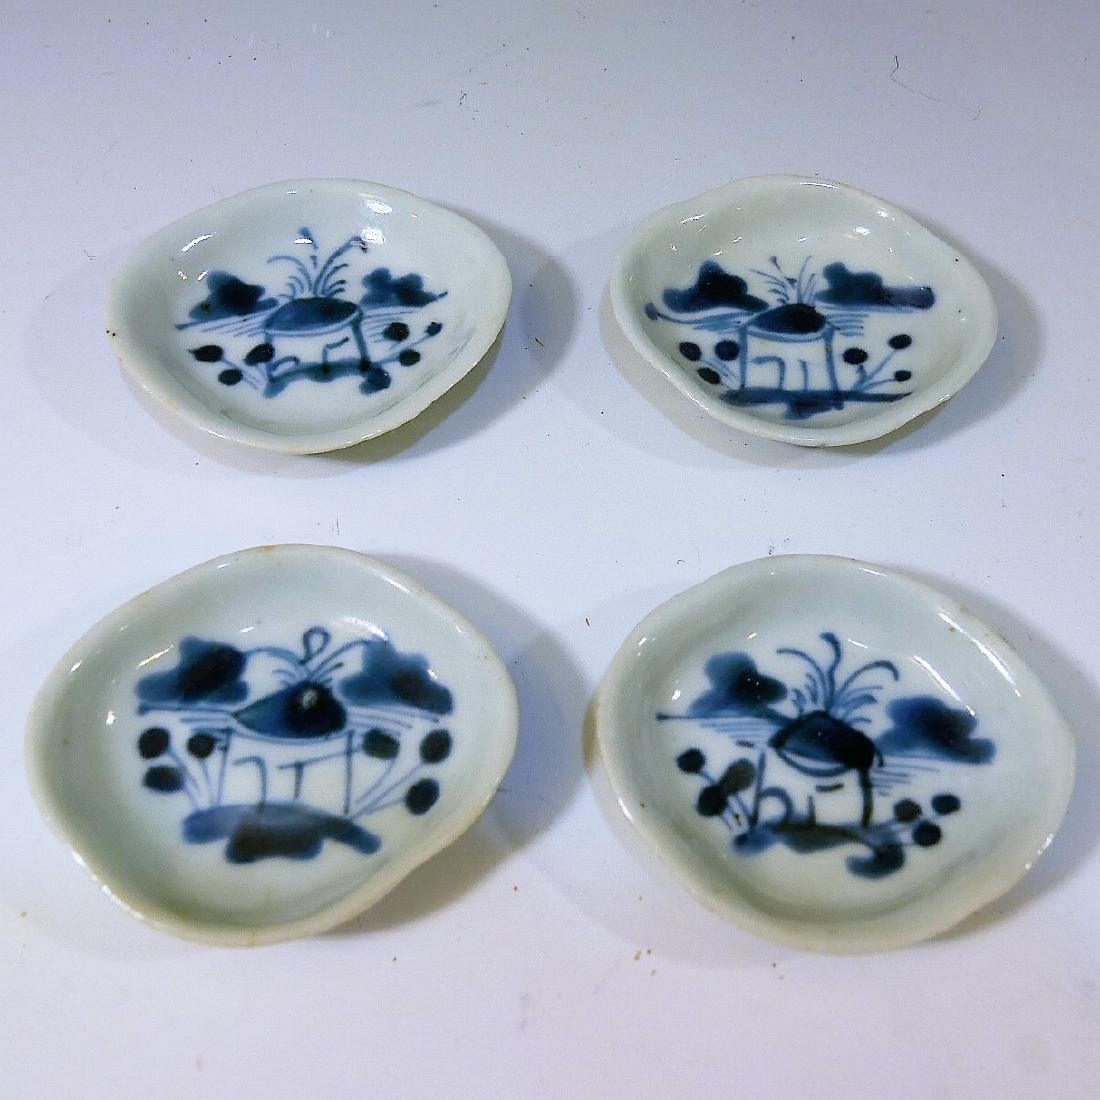 4 CHINESE ANTIQUE BLUE WHITE PORCELAIN DISH - QING